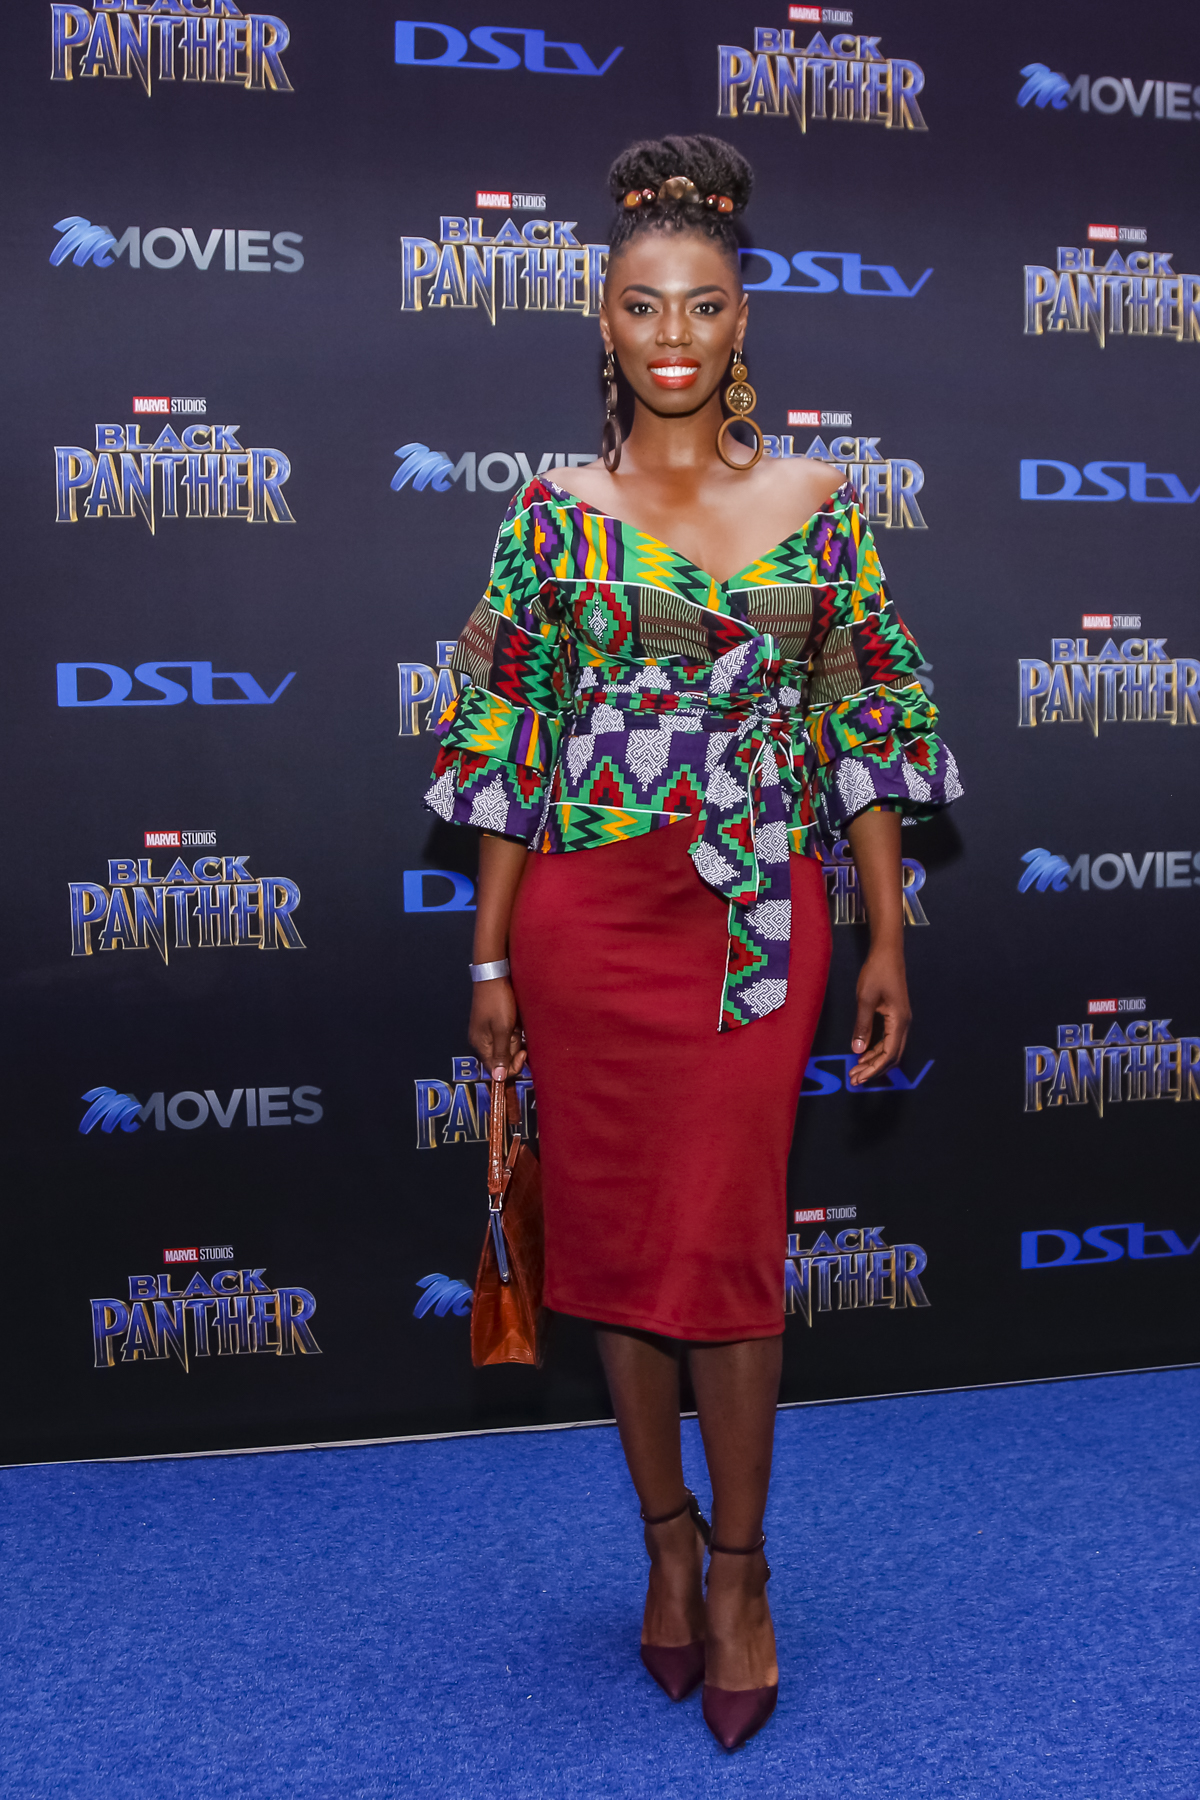 Top 5 Best Dressed Female Celebs At The Black Panther Sa